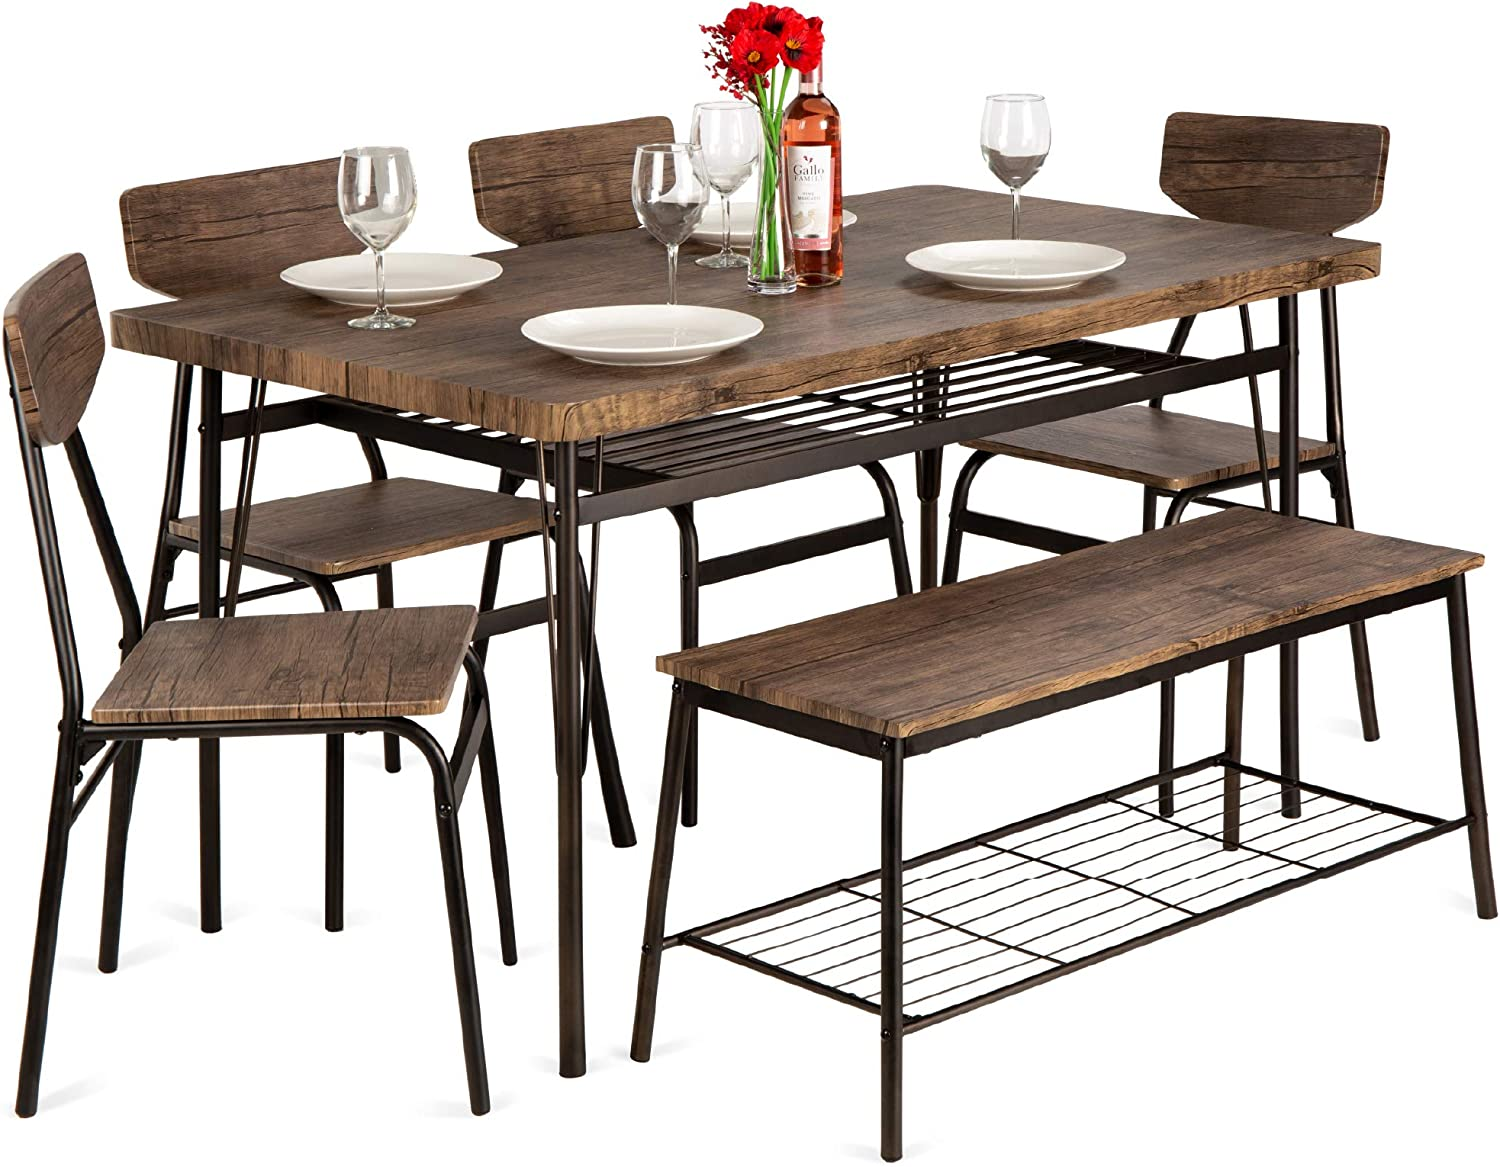 Best Choice Products 6 Piece 55in Wooden Modern Dining Set For Home Kitchen Dining Room W Storage Racks Rectangular Table Bench 4 Chairs Steel Frame Brown Table Chair Sets